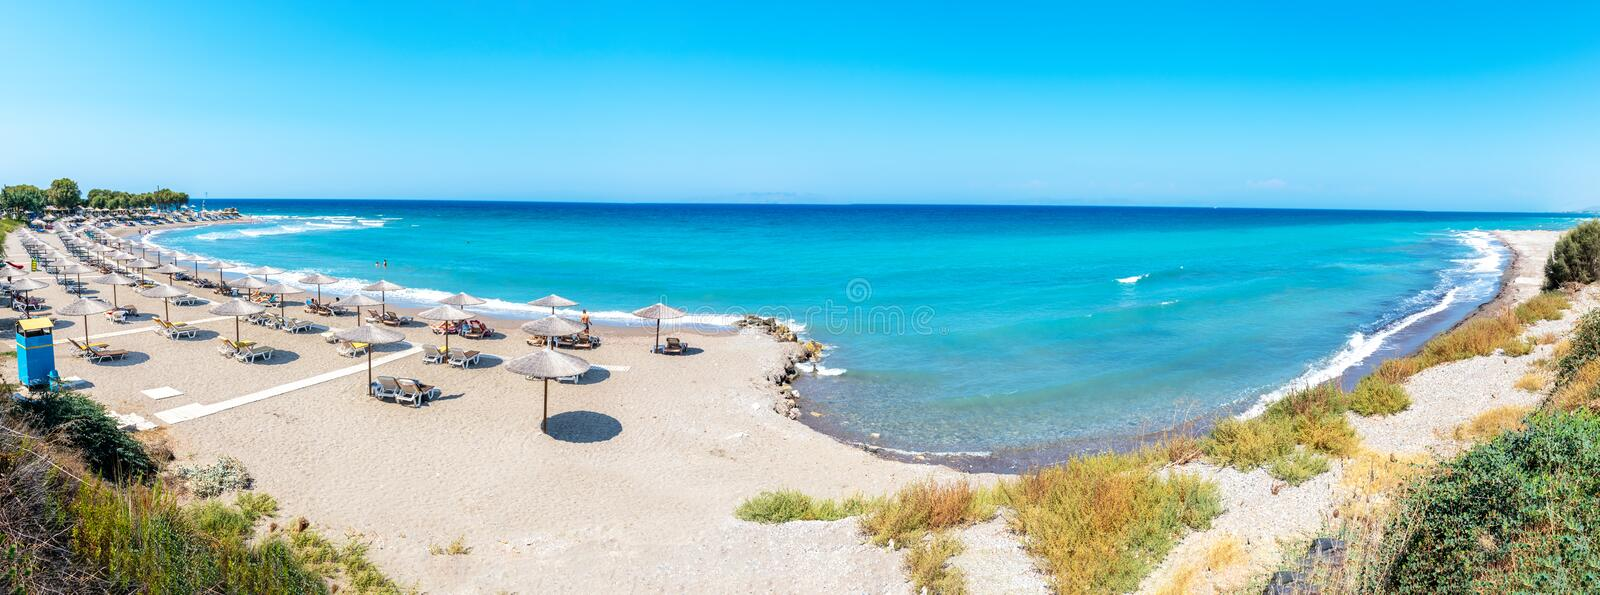 Panoramic view of beach near ancient city of Kamiros Rhodes, Greece royalty free stock photos